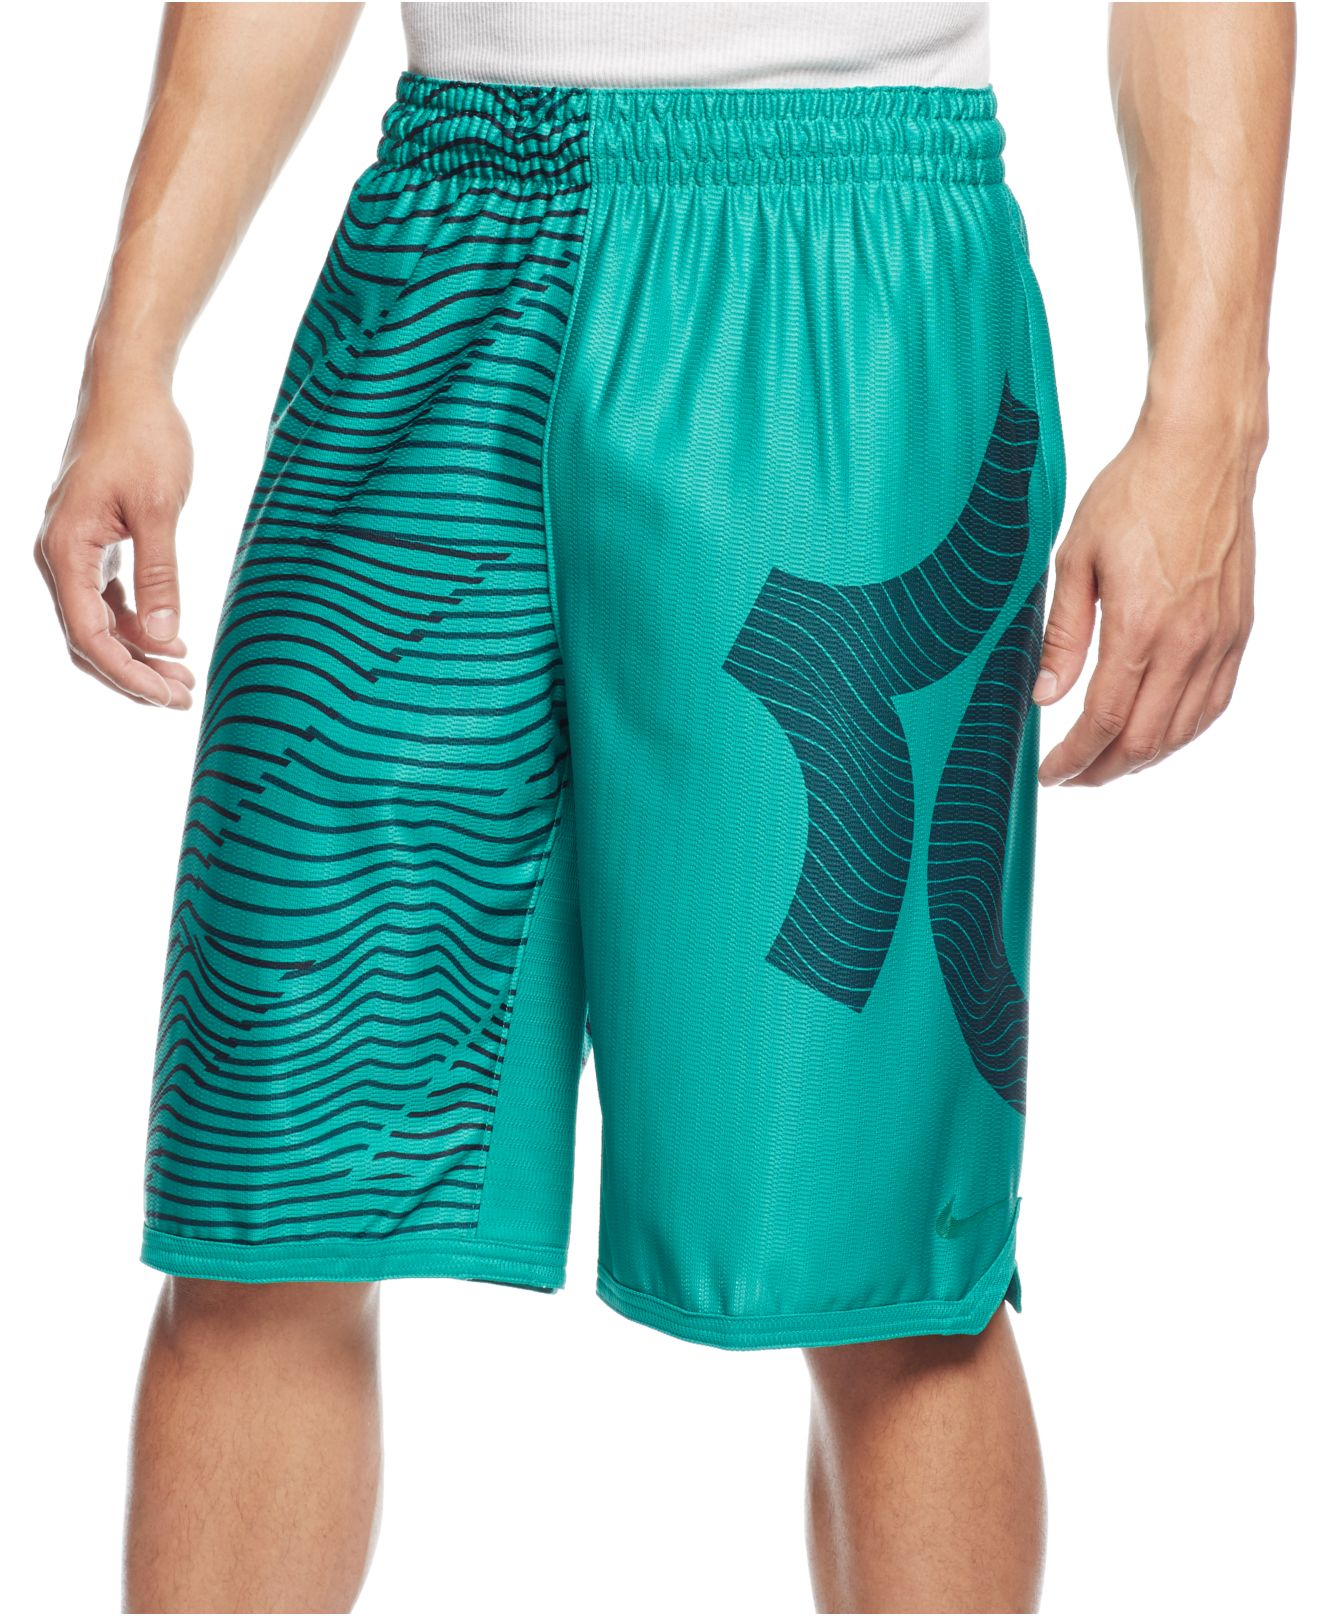 Shop men's green shorts from DICK'S Sporting Goods today. If you find a lower price on men's green shorts somewhere else, we'll match it with our Best Price Guarantee! Check out customer reviews on men's green shorts and save big on a variety of products. Plus, ScoreCard members earn points on every purchase.